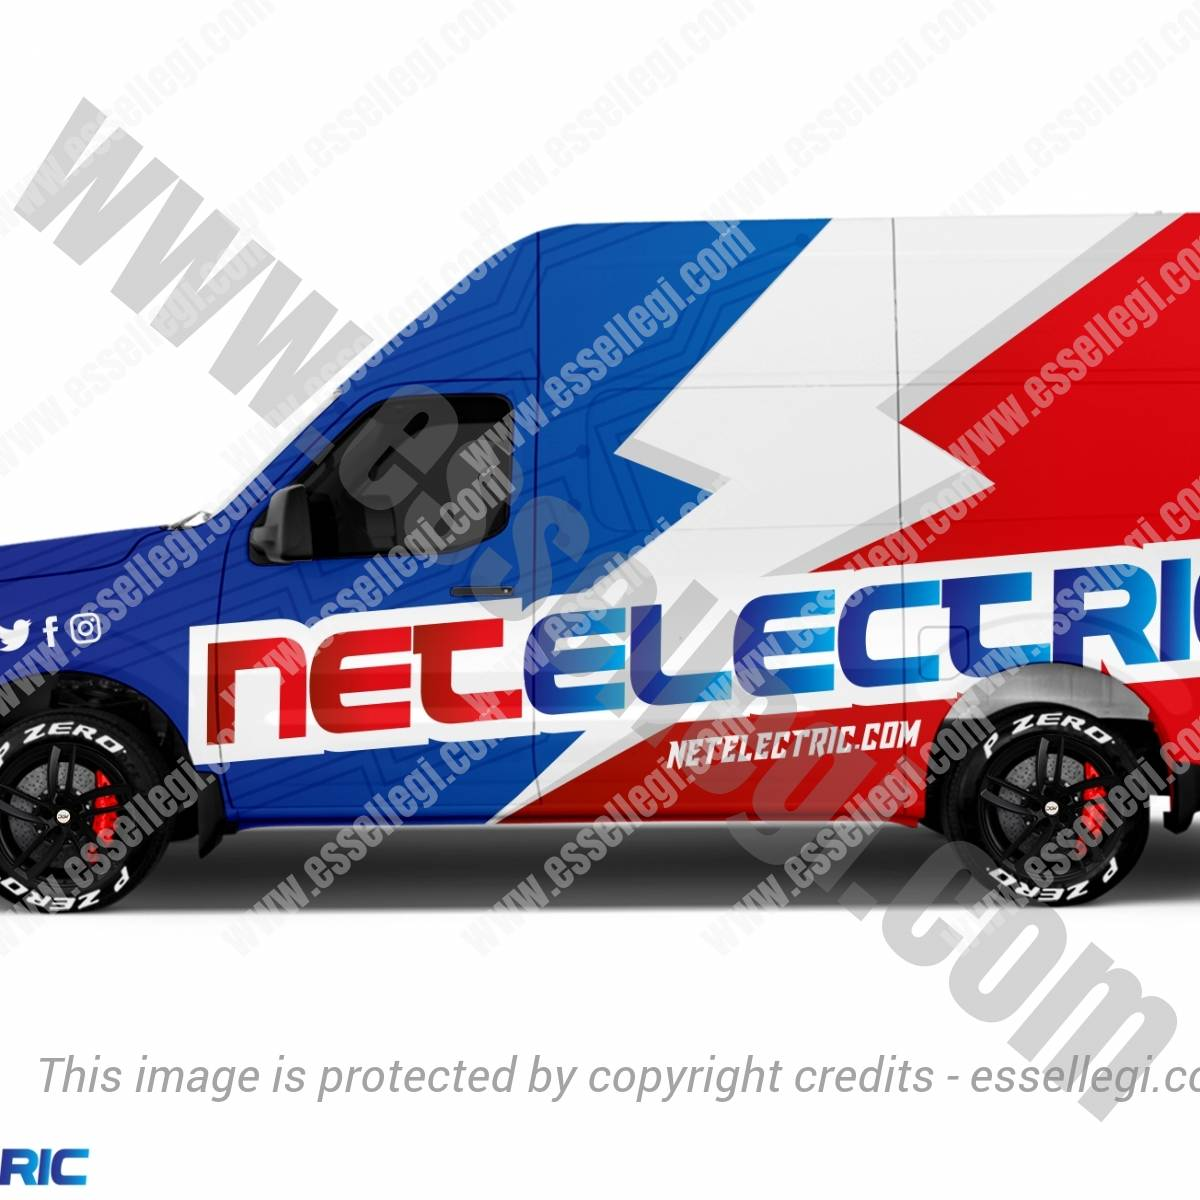 NETELECTRIC | VAN WRAP DESIGN 🇺🇸